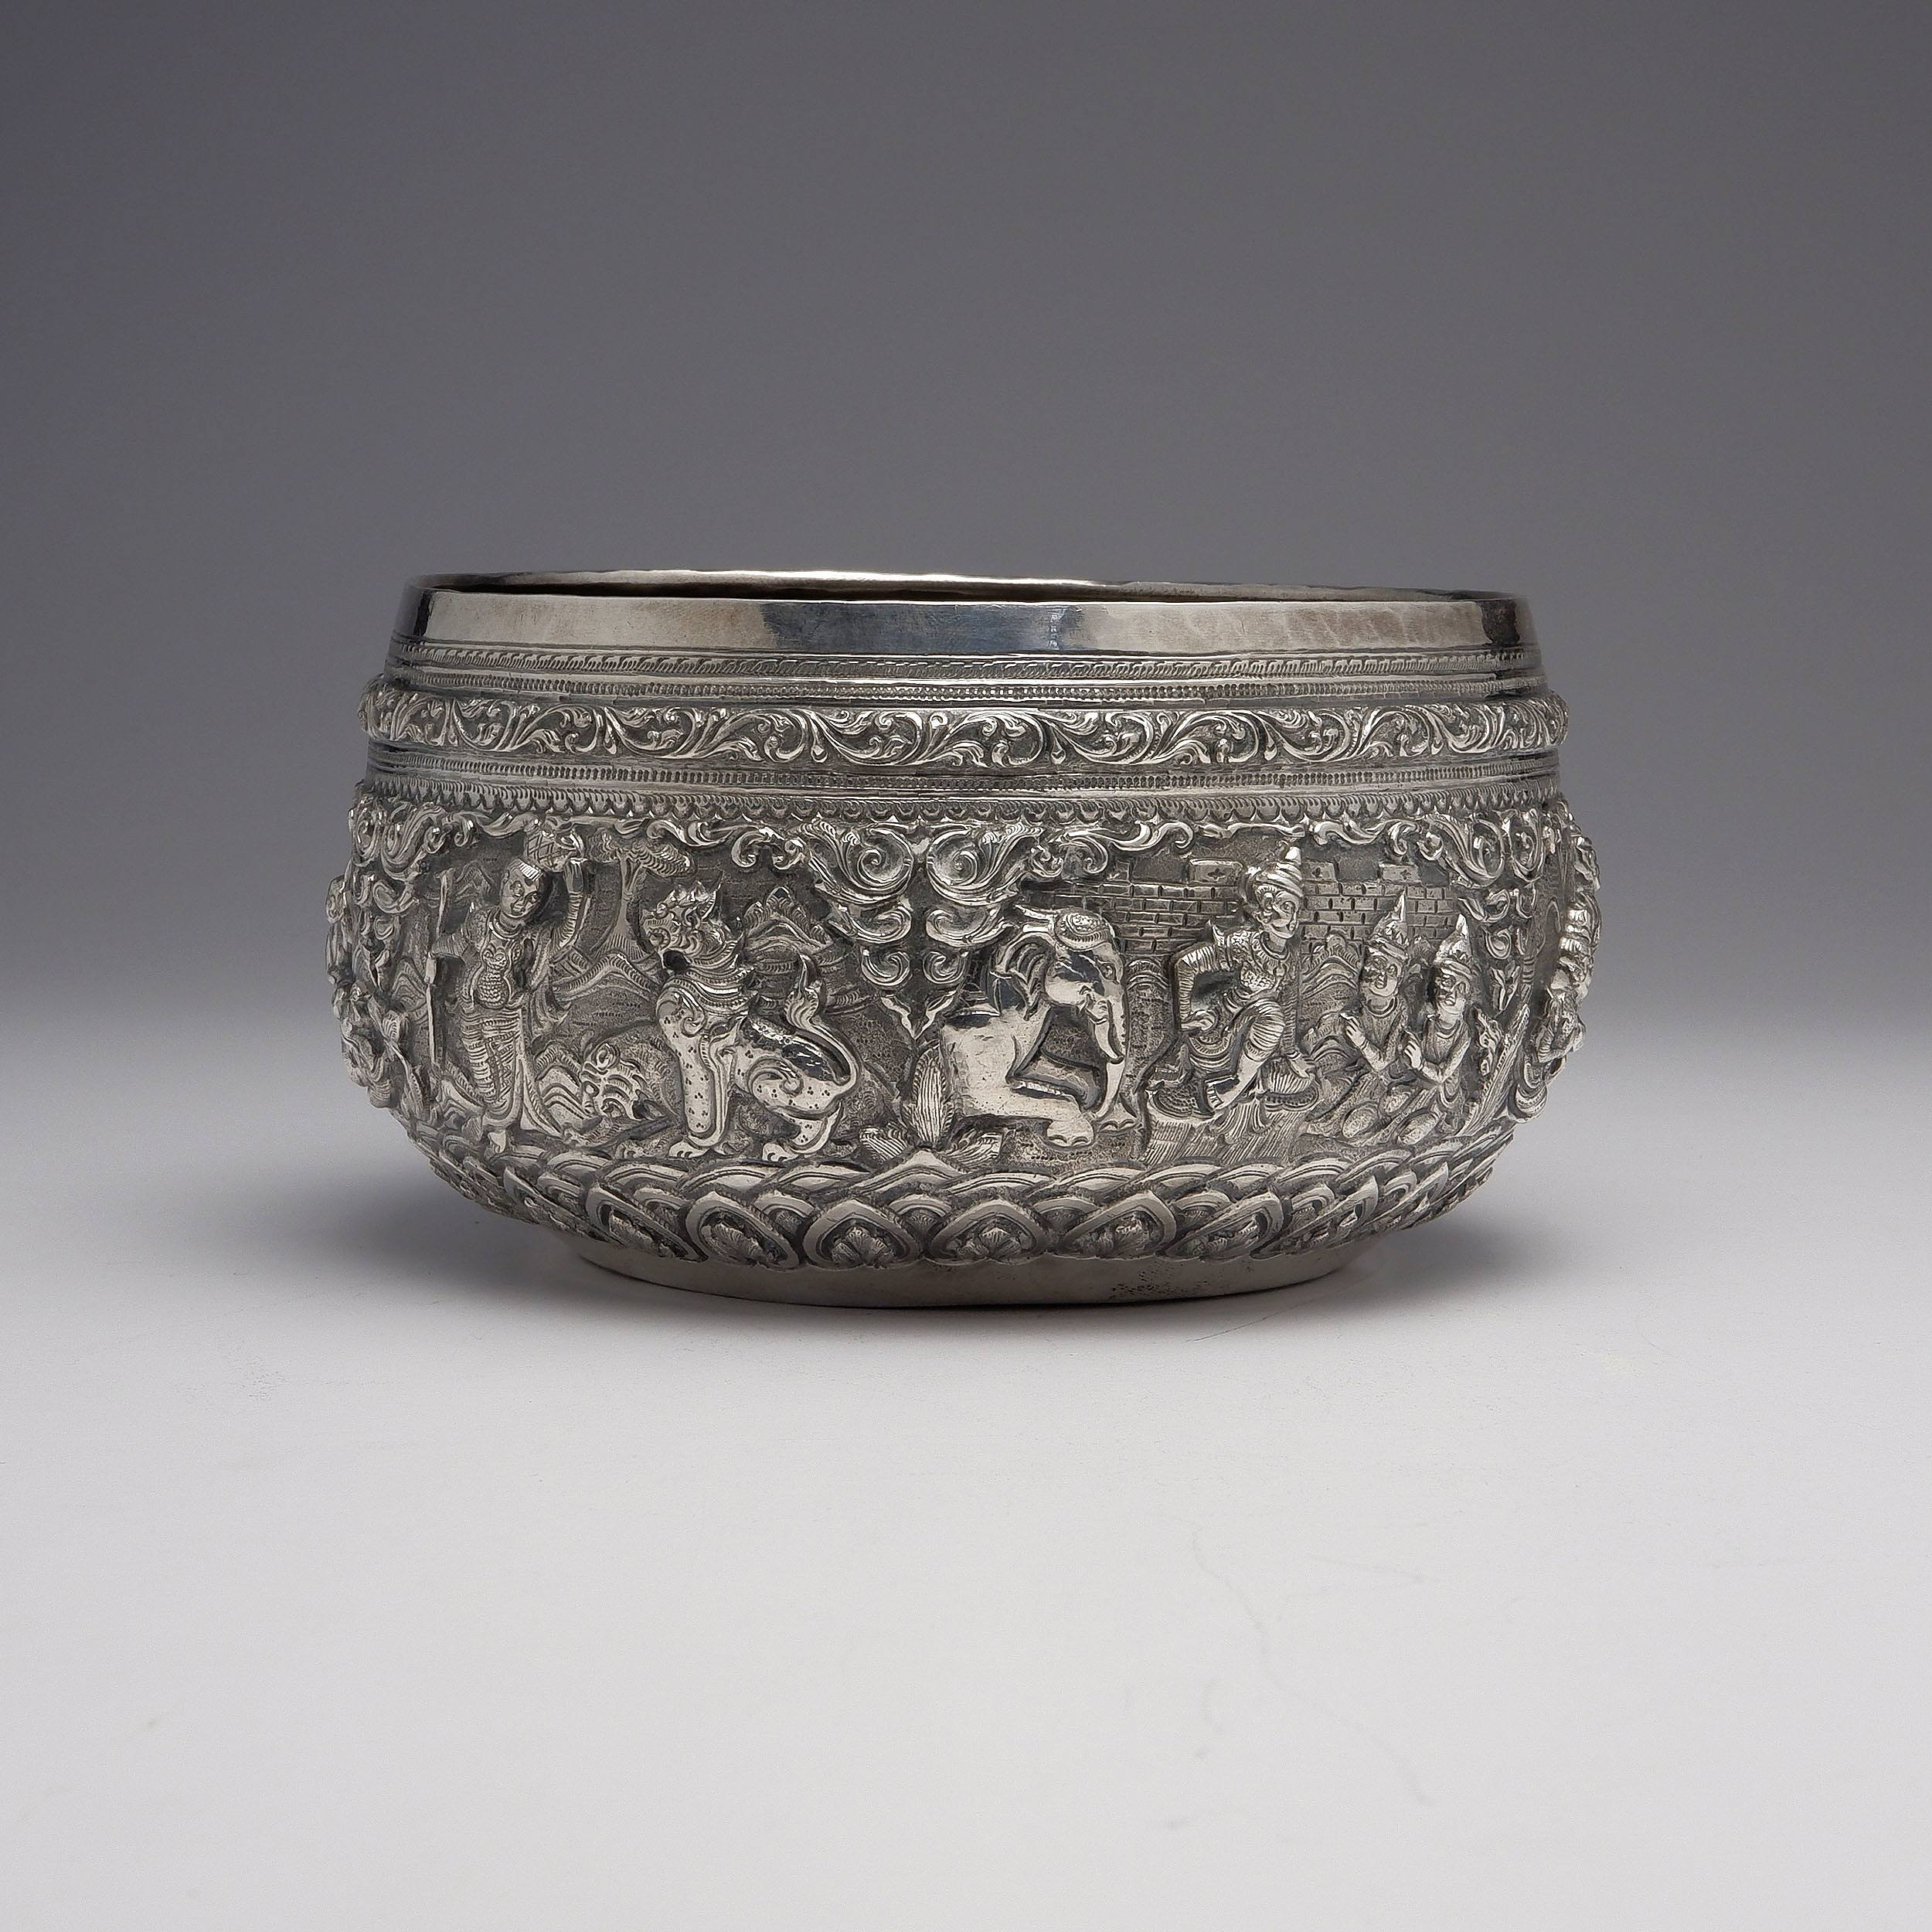 'Burmese .9999 Silver Ceremonial Bowl with Heavy Repousse Decoration, 346g'